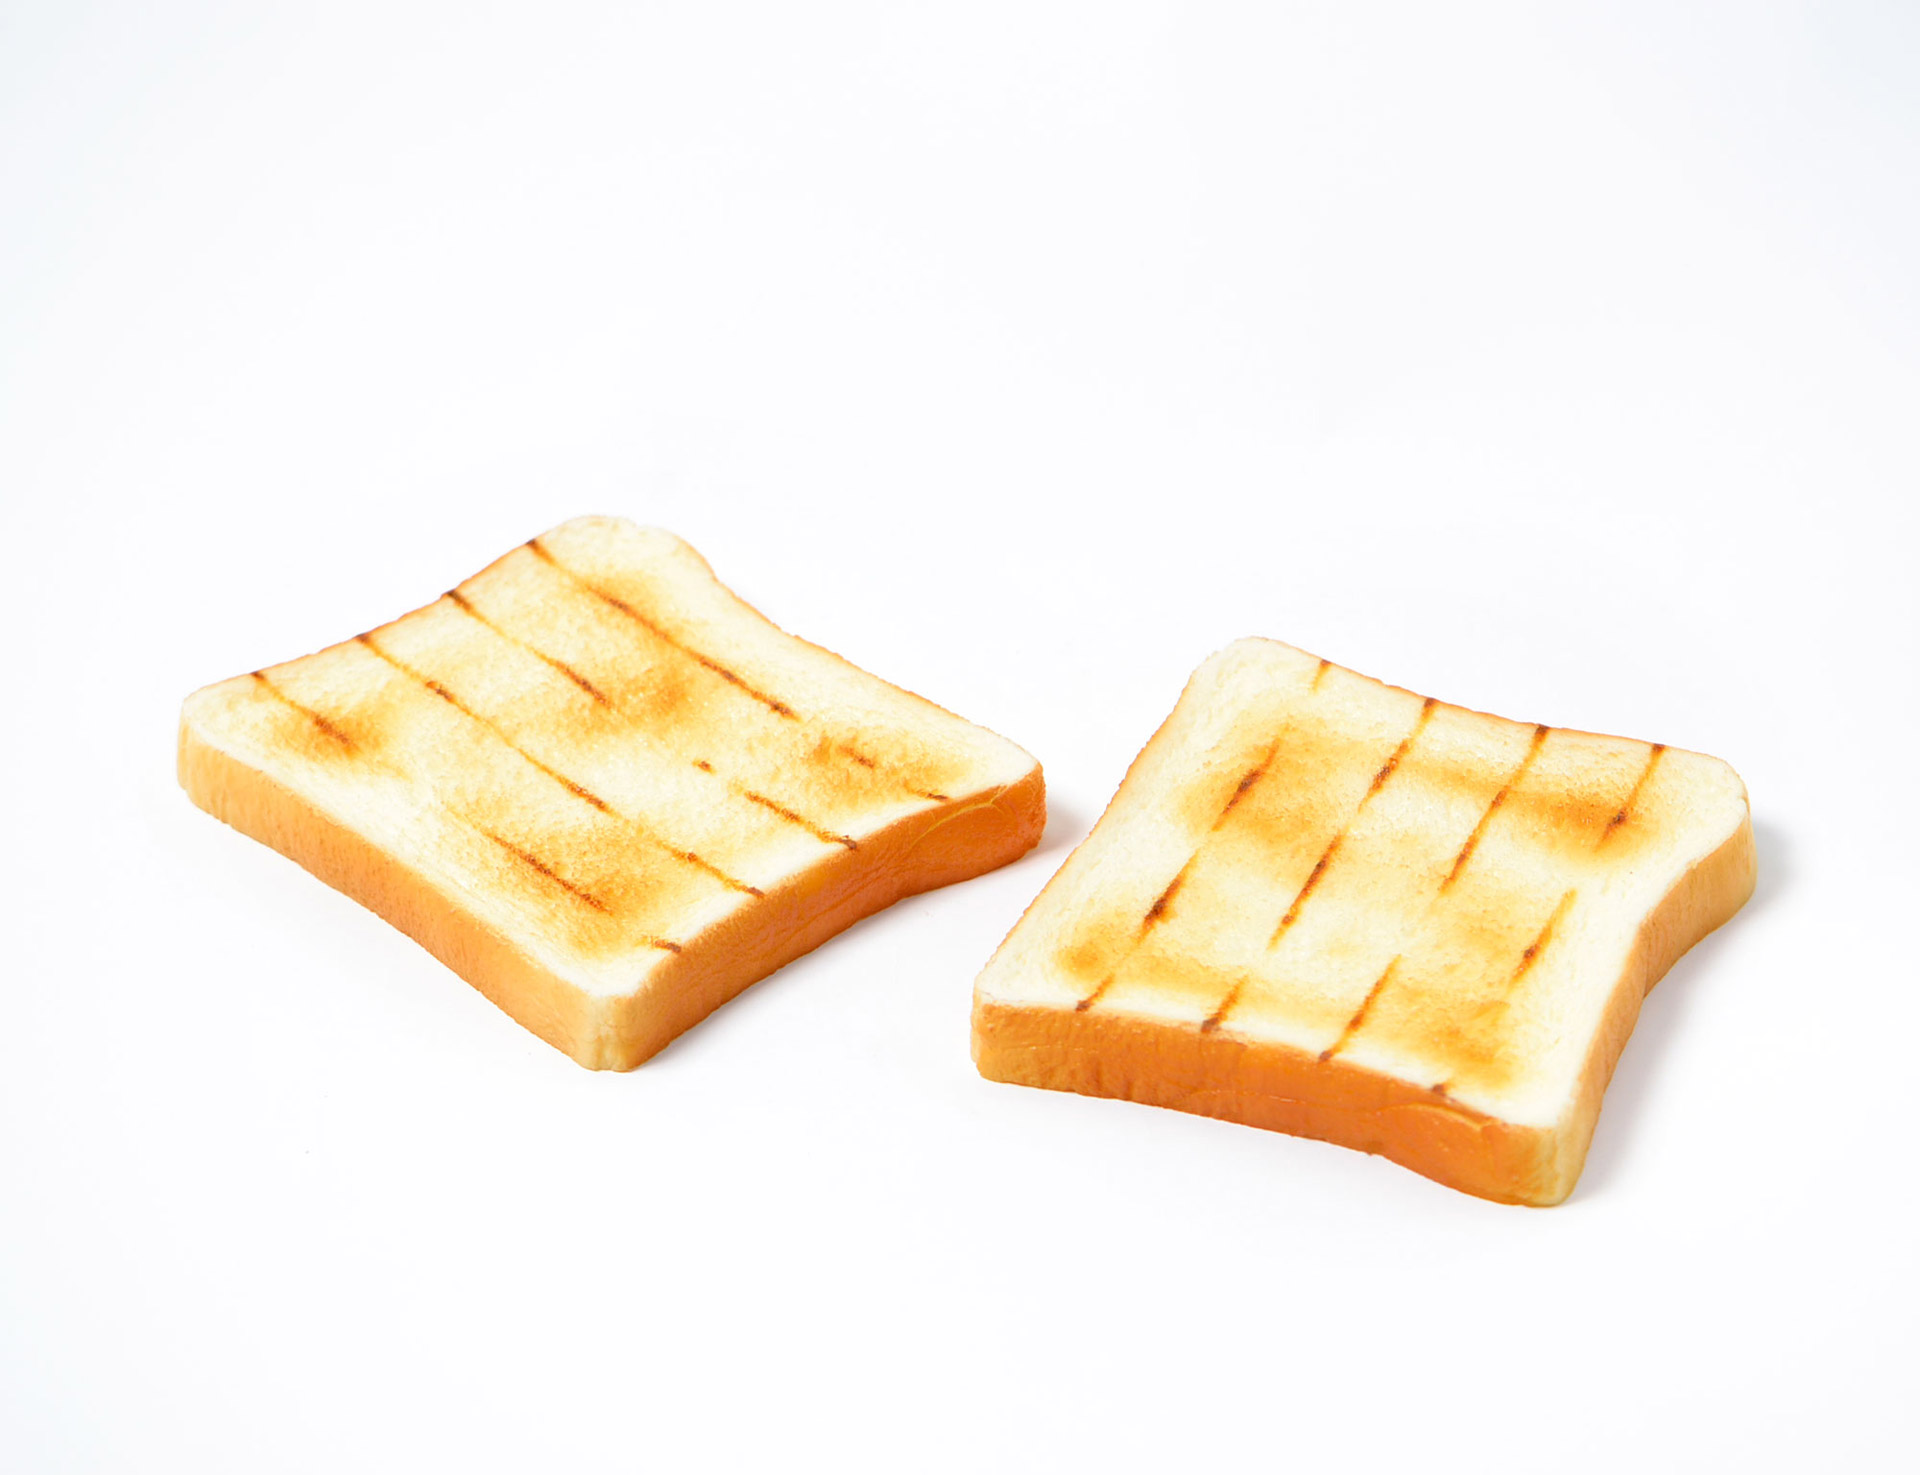 slices-of-bread.jpg